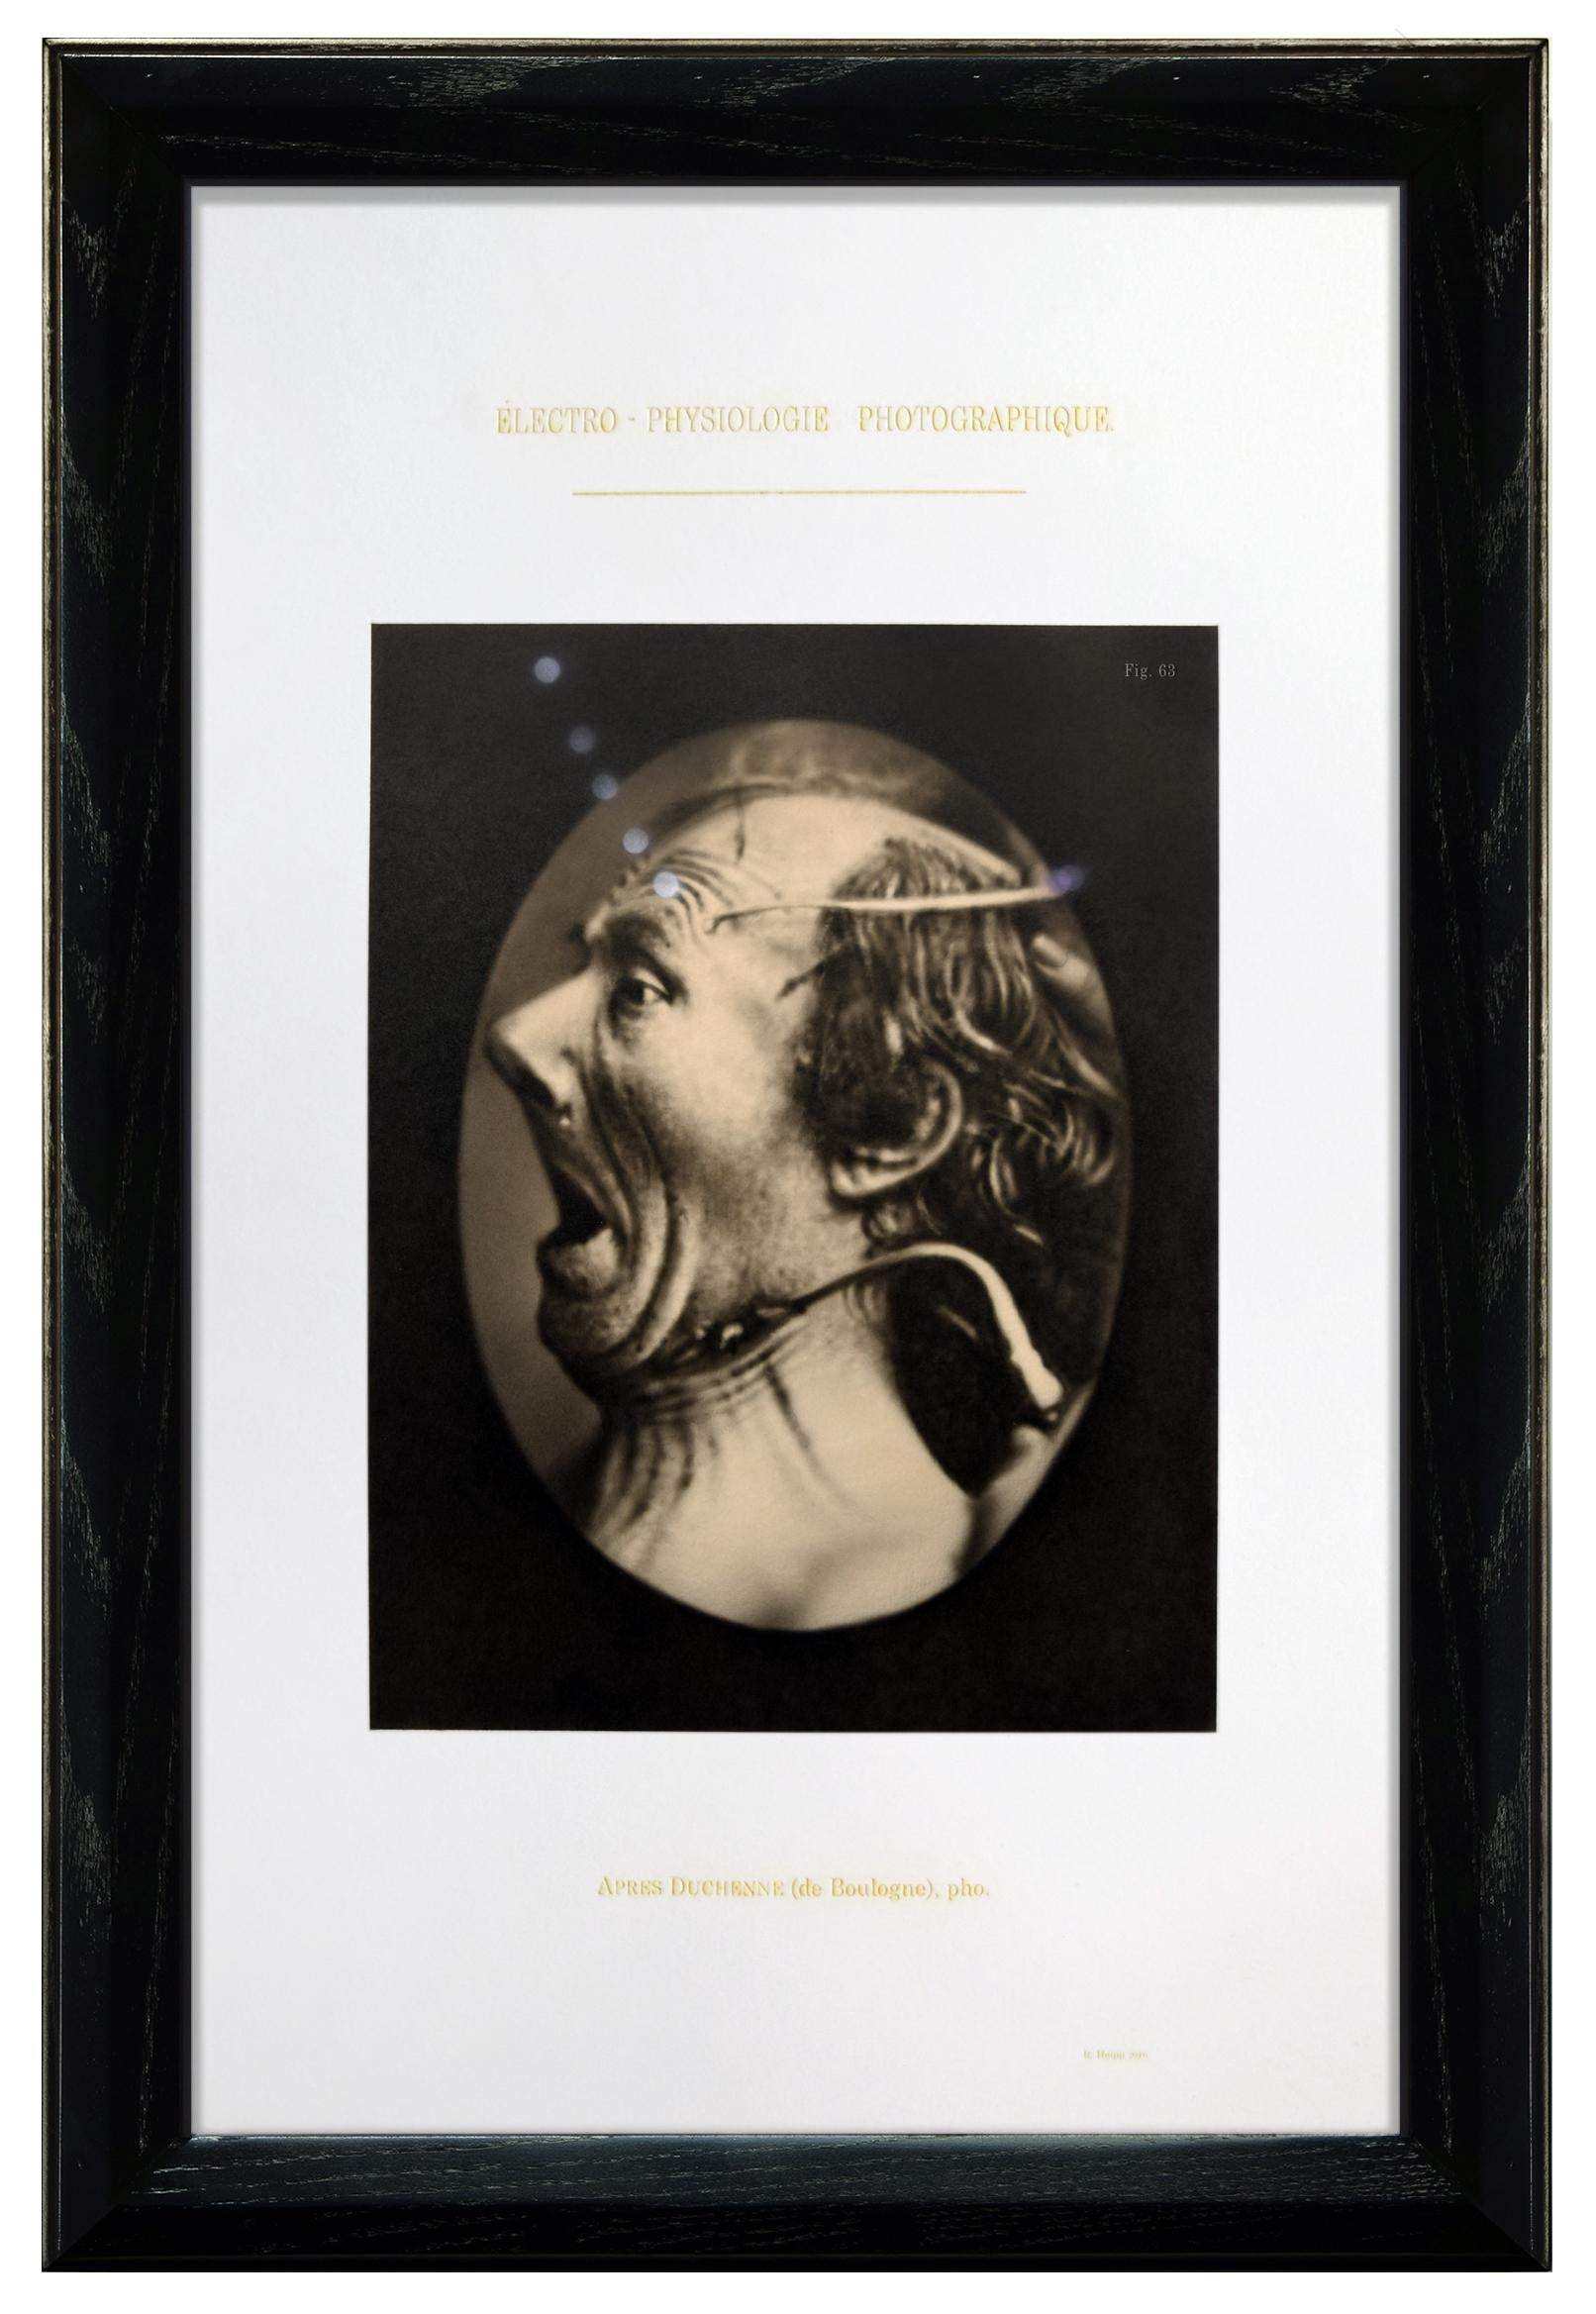 ELECTRO-PHYSIOLGIE SERIES - FIGURE 63 - hyperrealistic painting